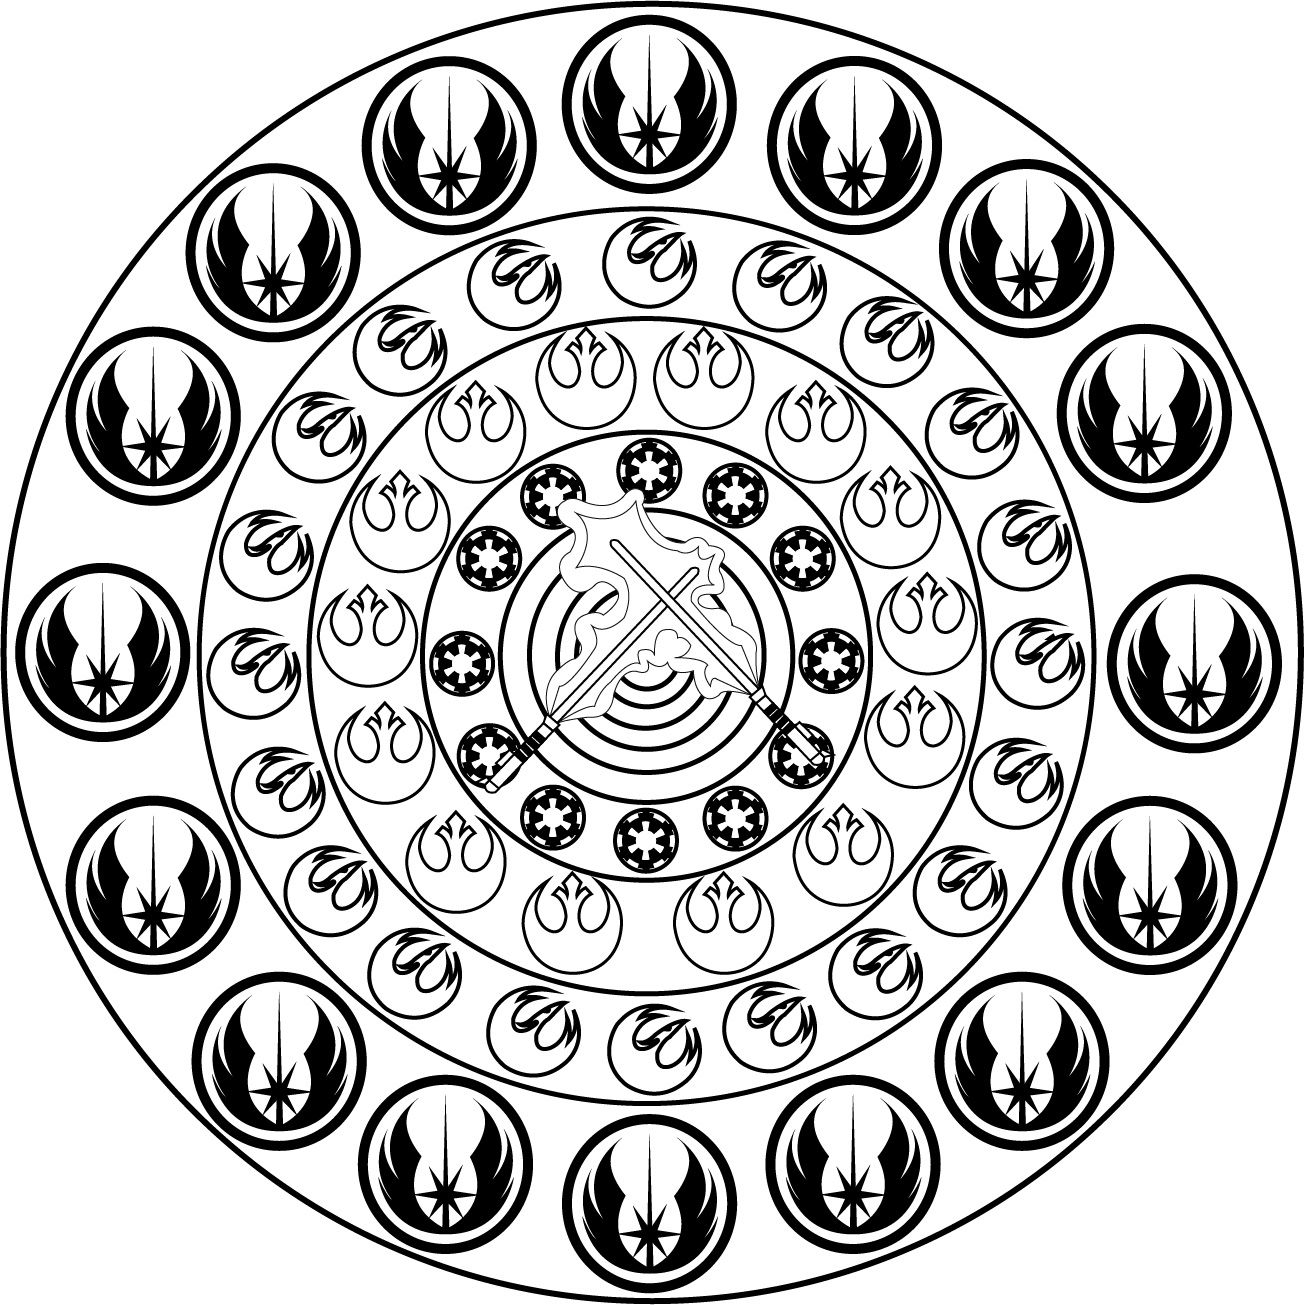 Color this Mandala inspired by Star Wars featuring the logo of the ...